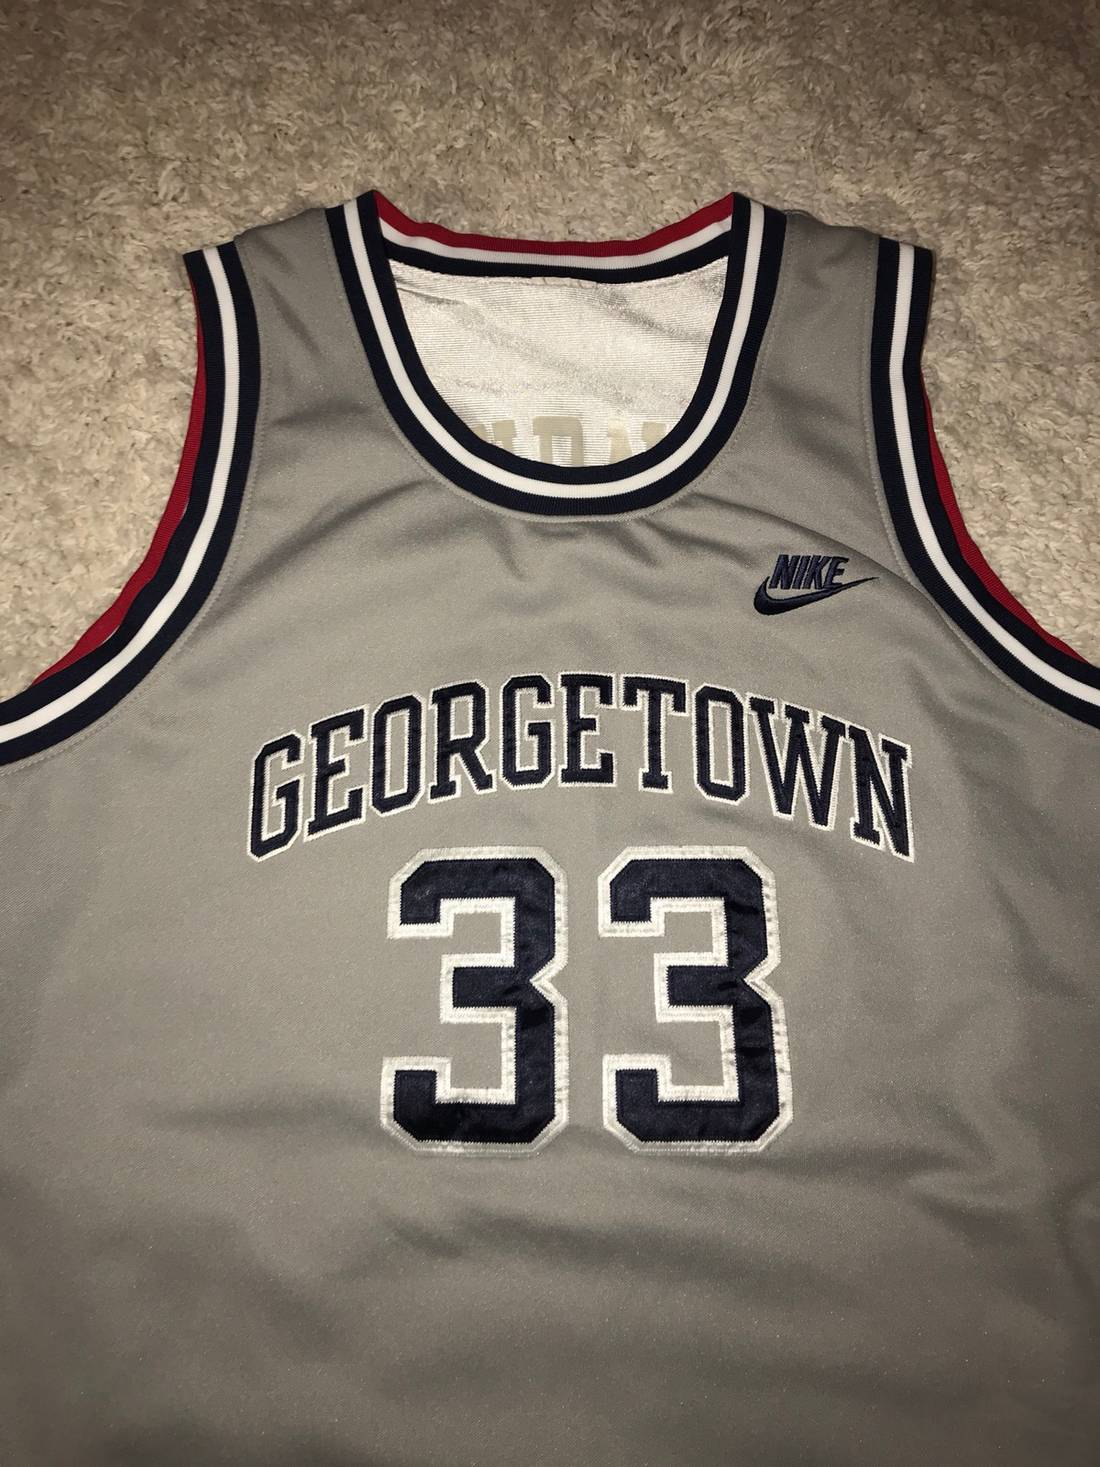 489bff1f6cb ... coupon nike vintage 1992 reversible alonzo mourning georgetown usa  olympics jersey adult large size us l